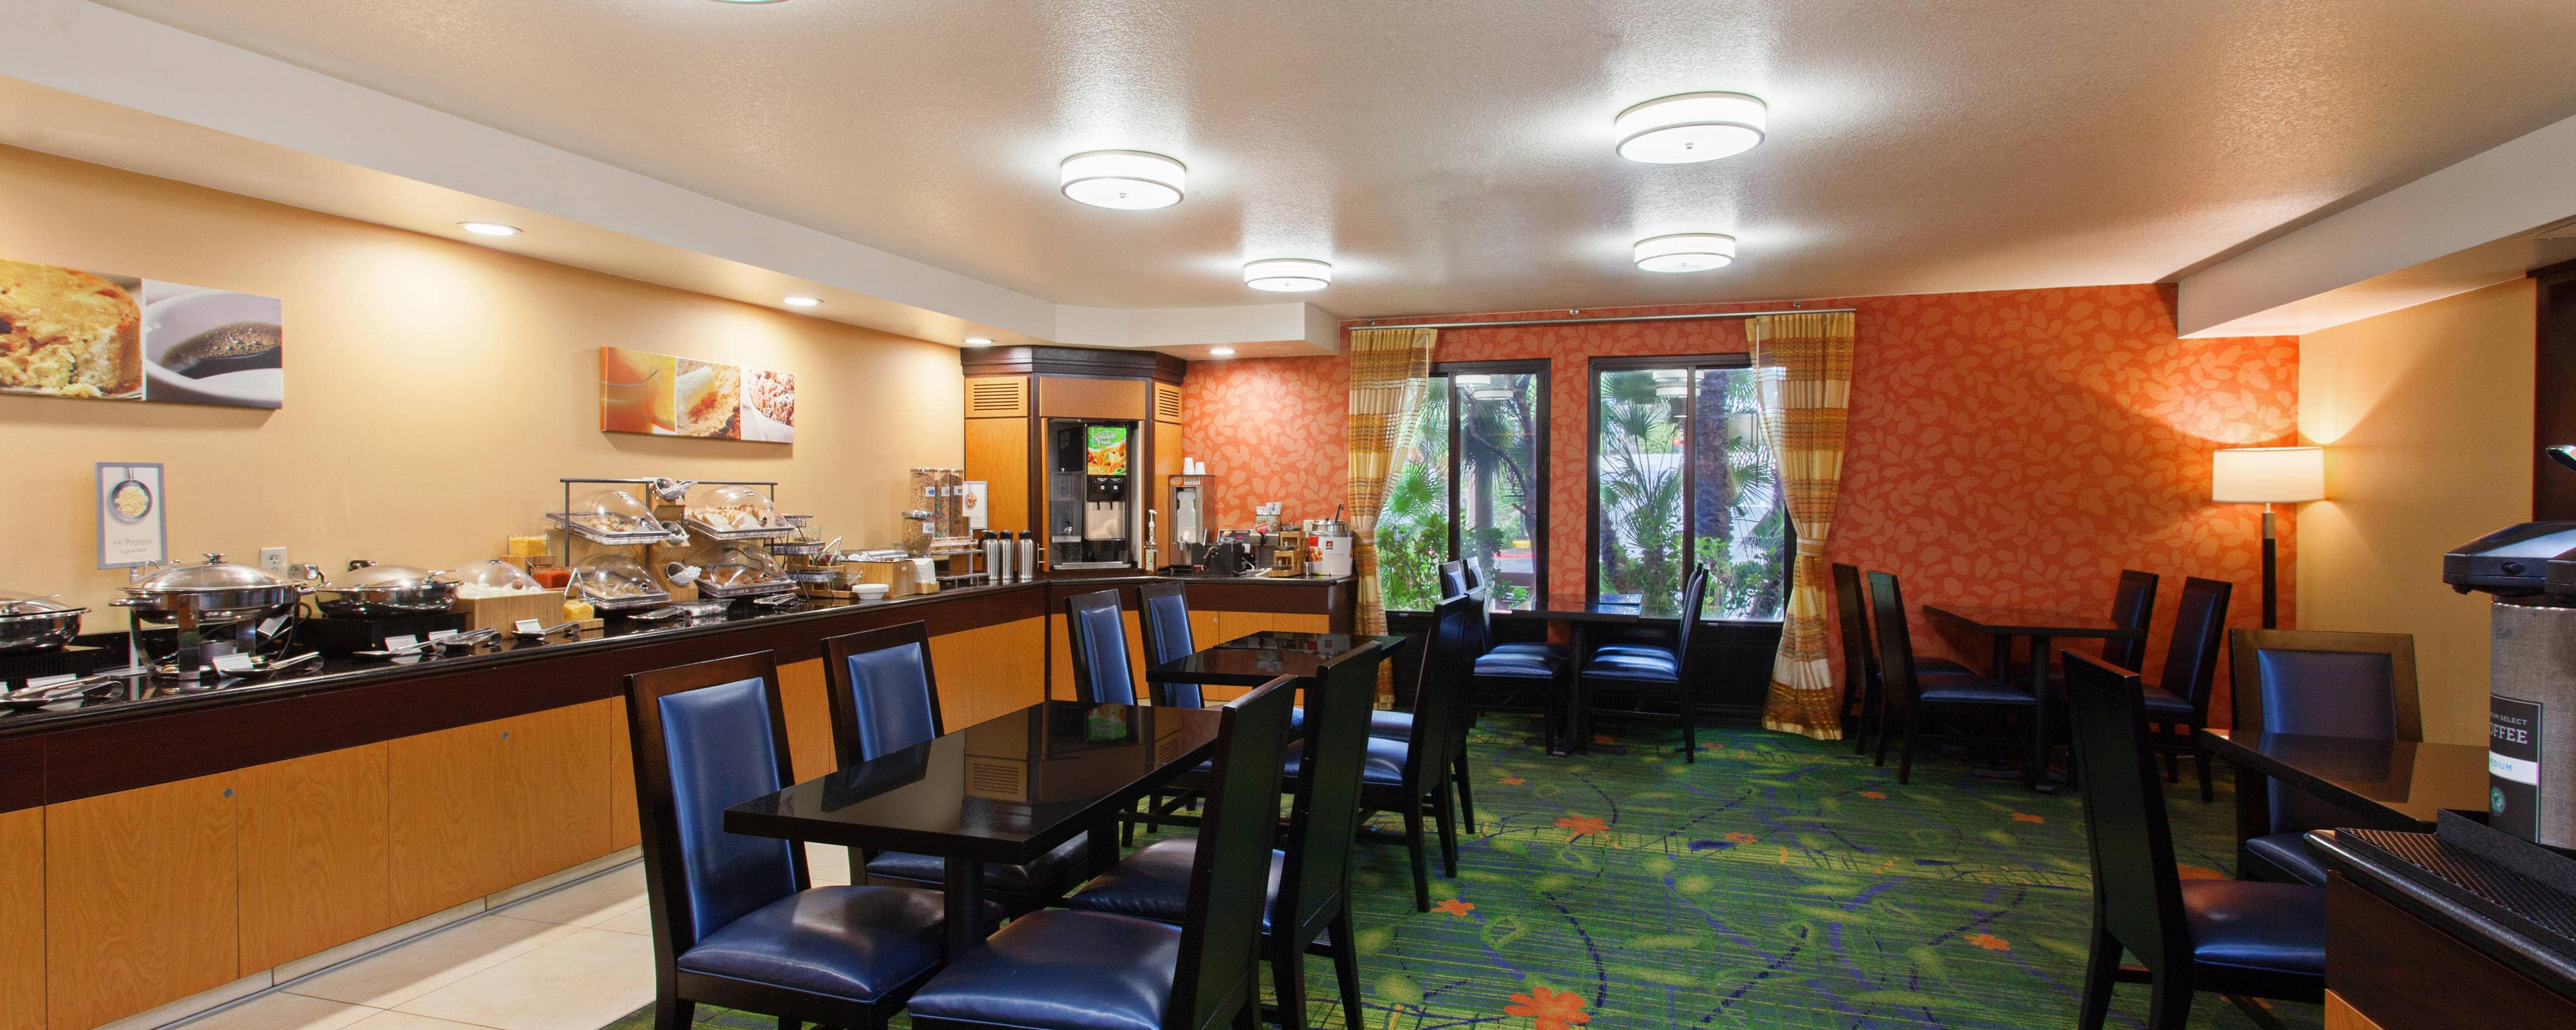 mission viejo hotel restaurants fairfield inn mission. Black Bedroom Furniture Sets. Home Design Ideas